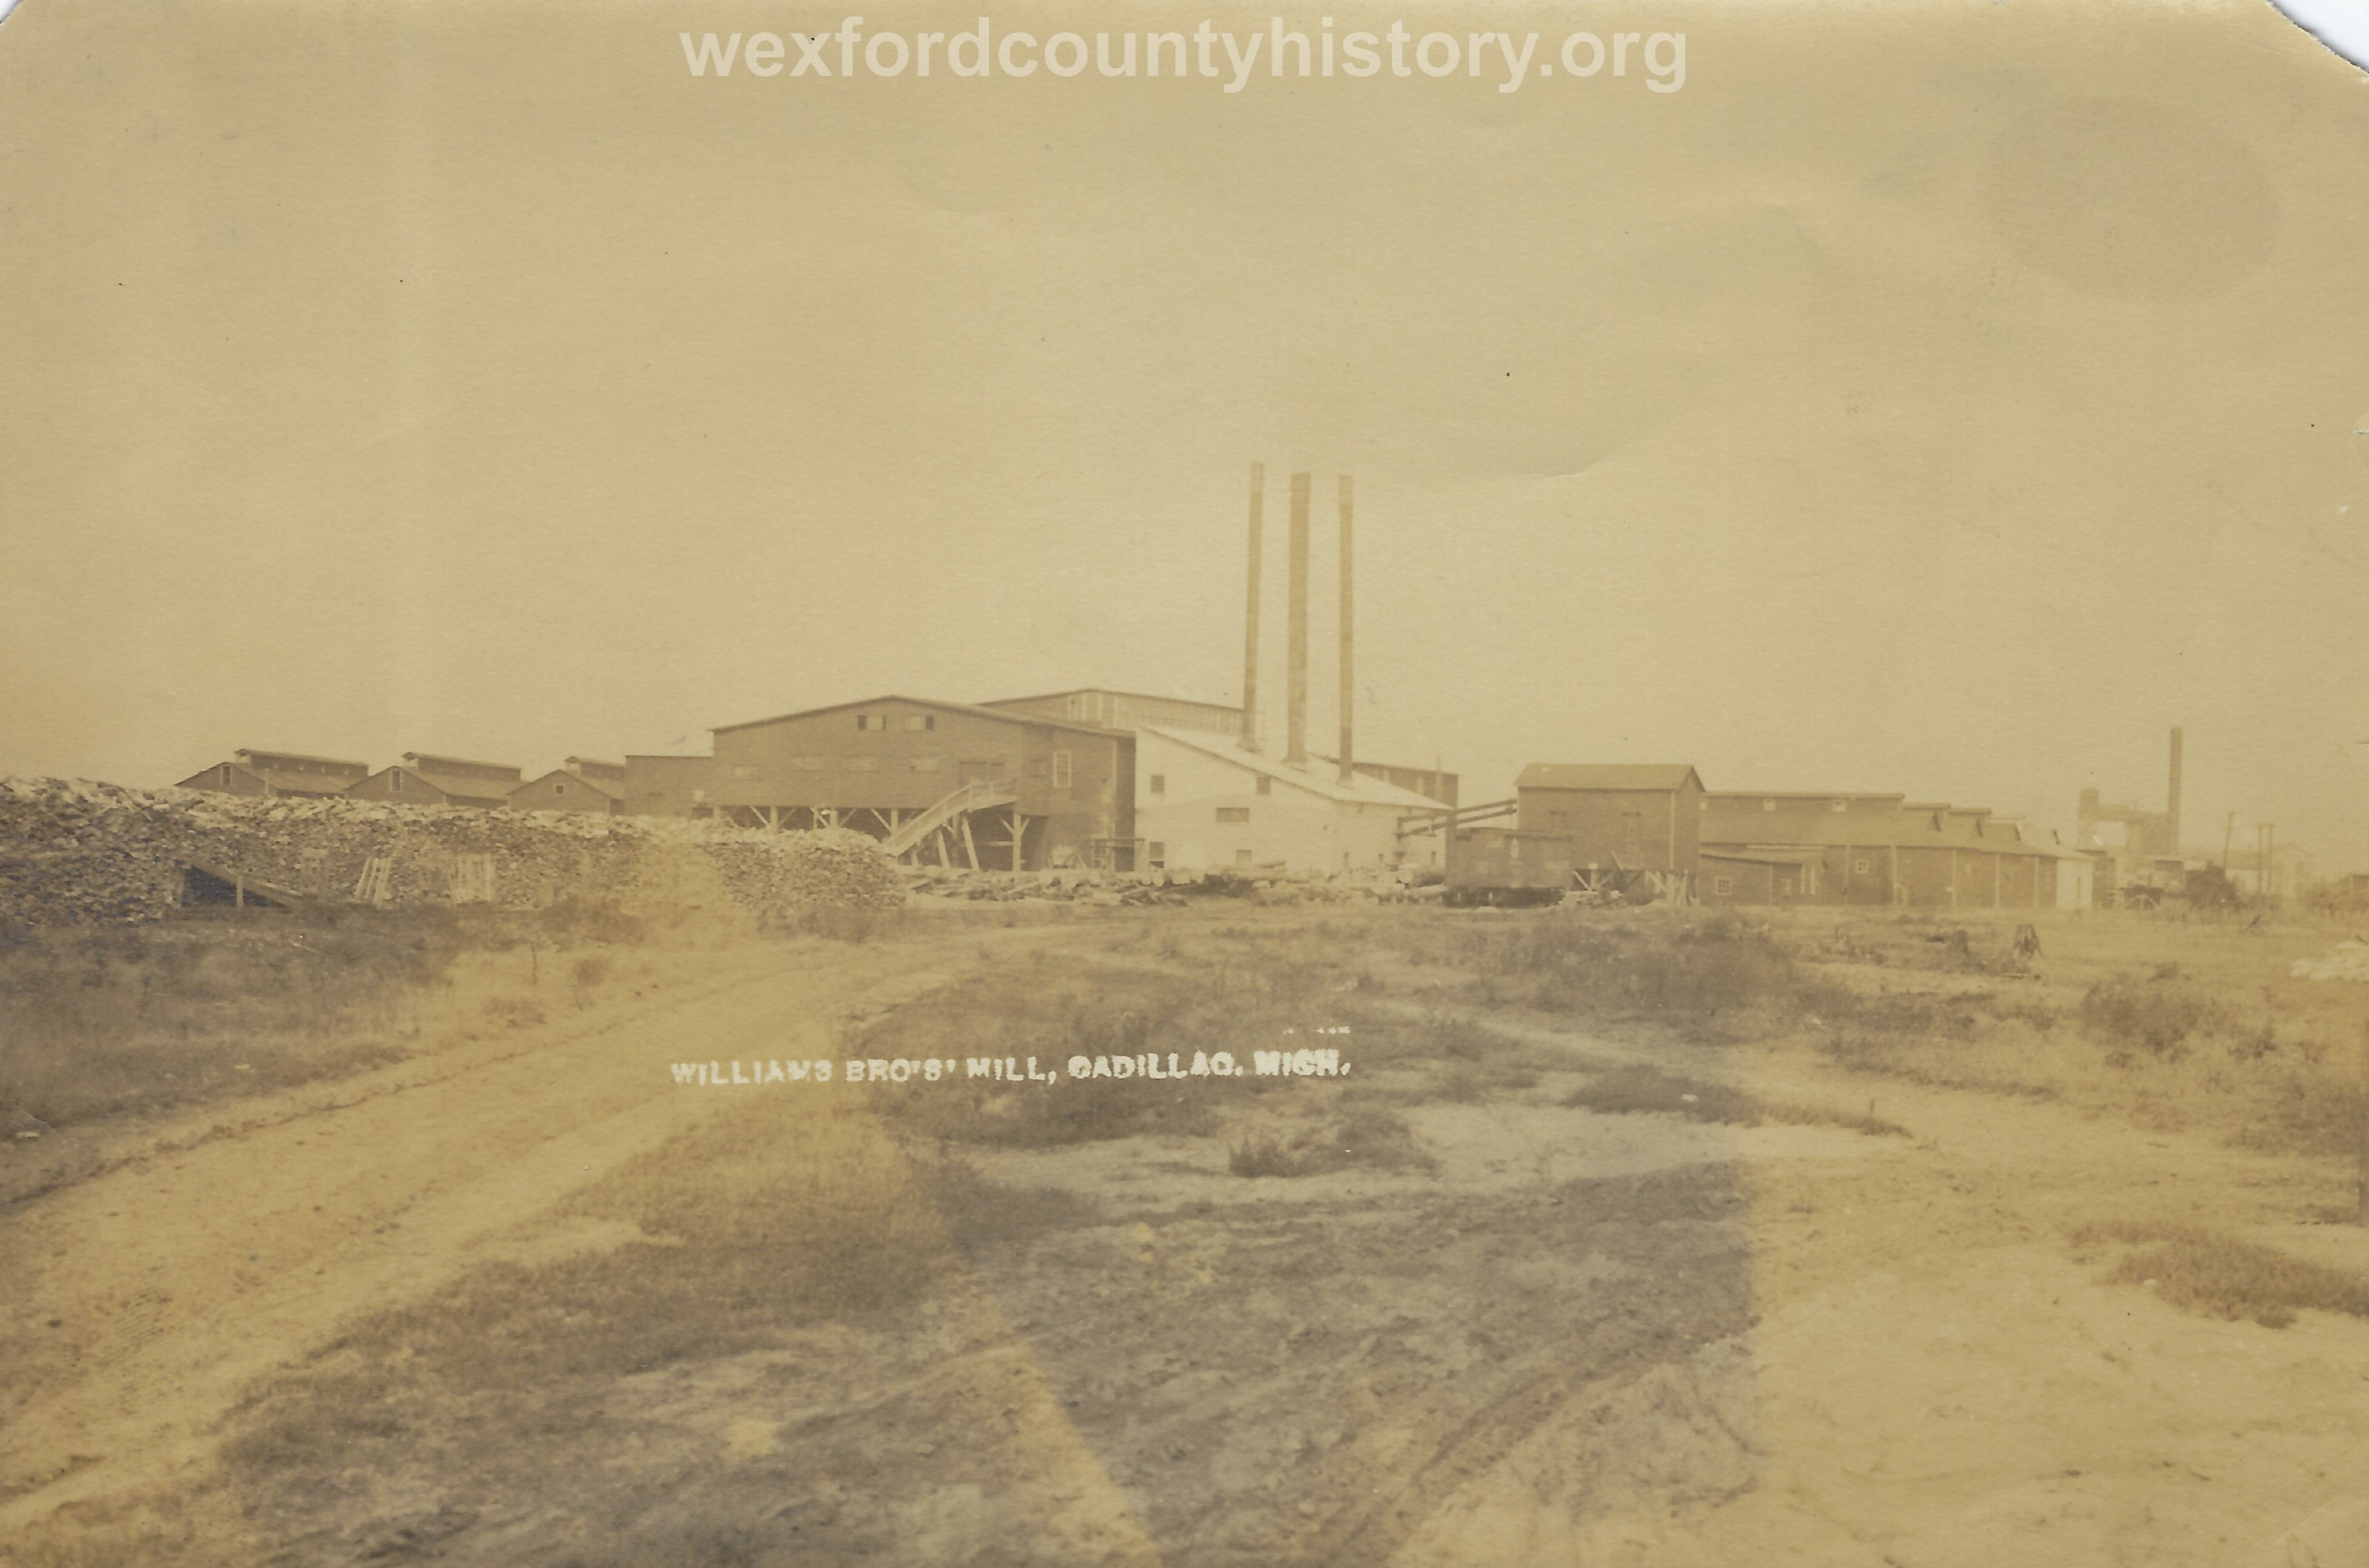 Cadillac-Business-Williams-Brothers-Mill